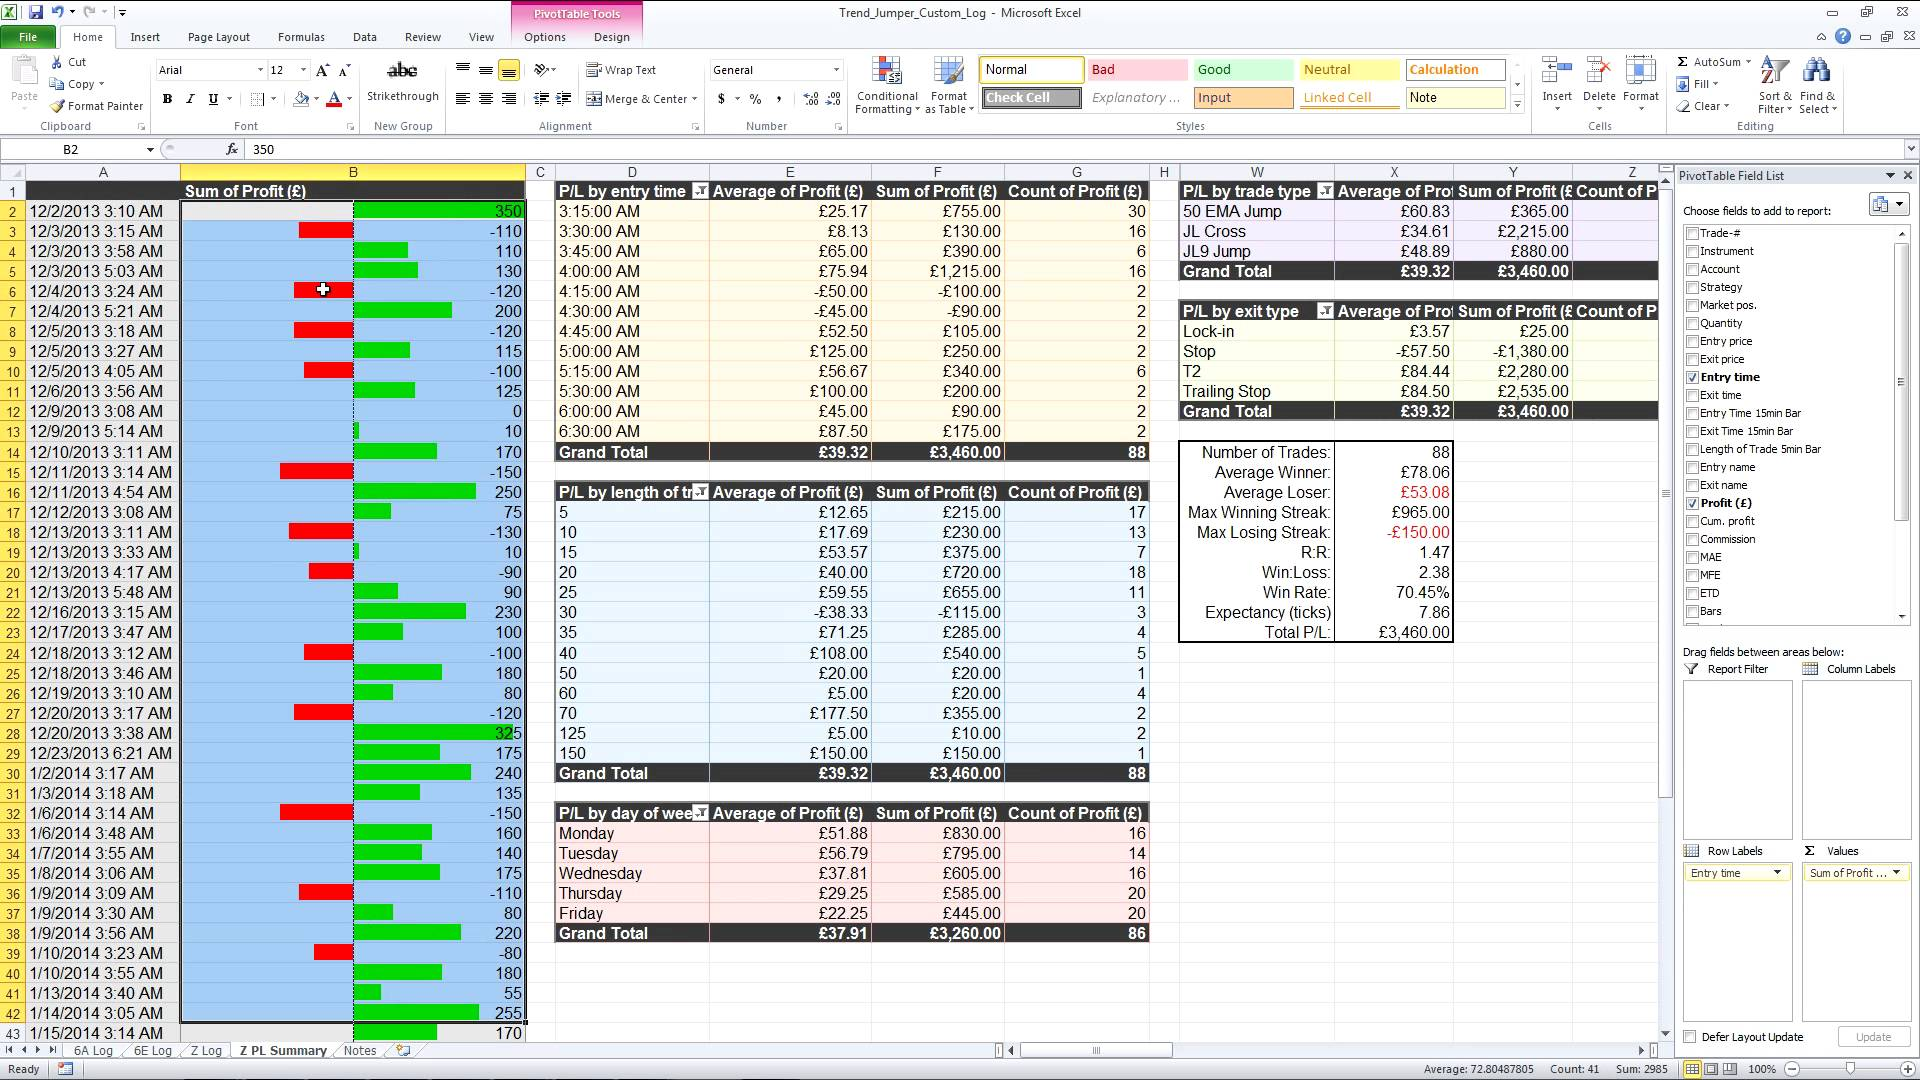 tjs trading journal spreadsheet free download